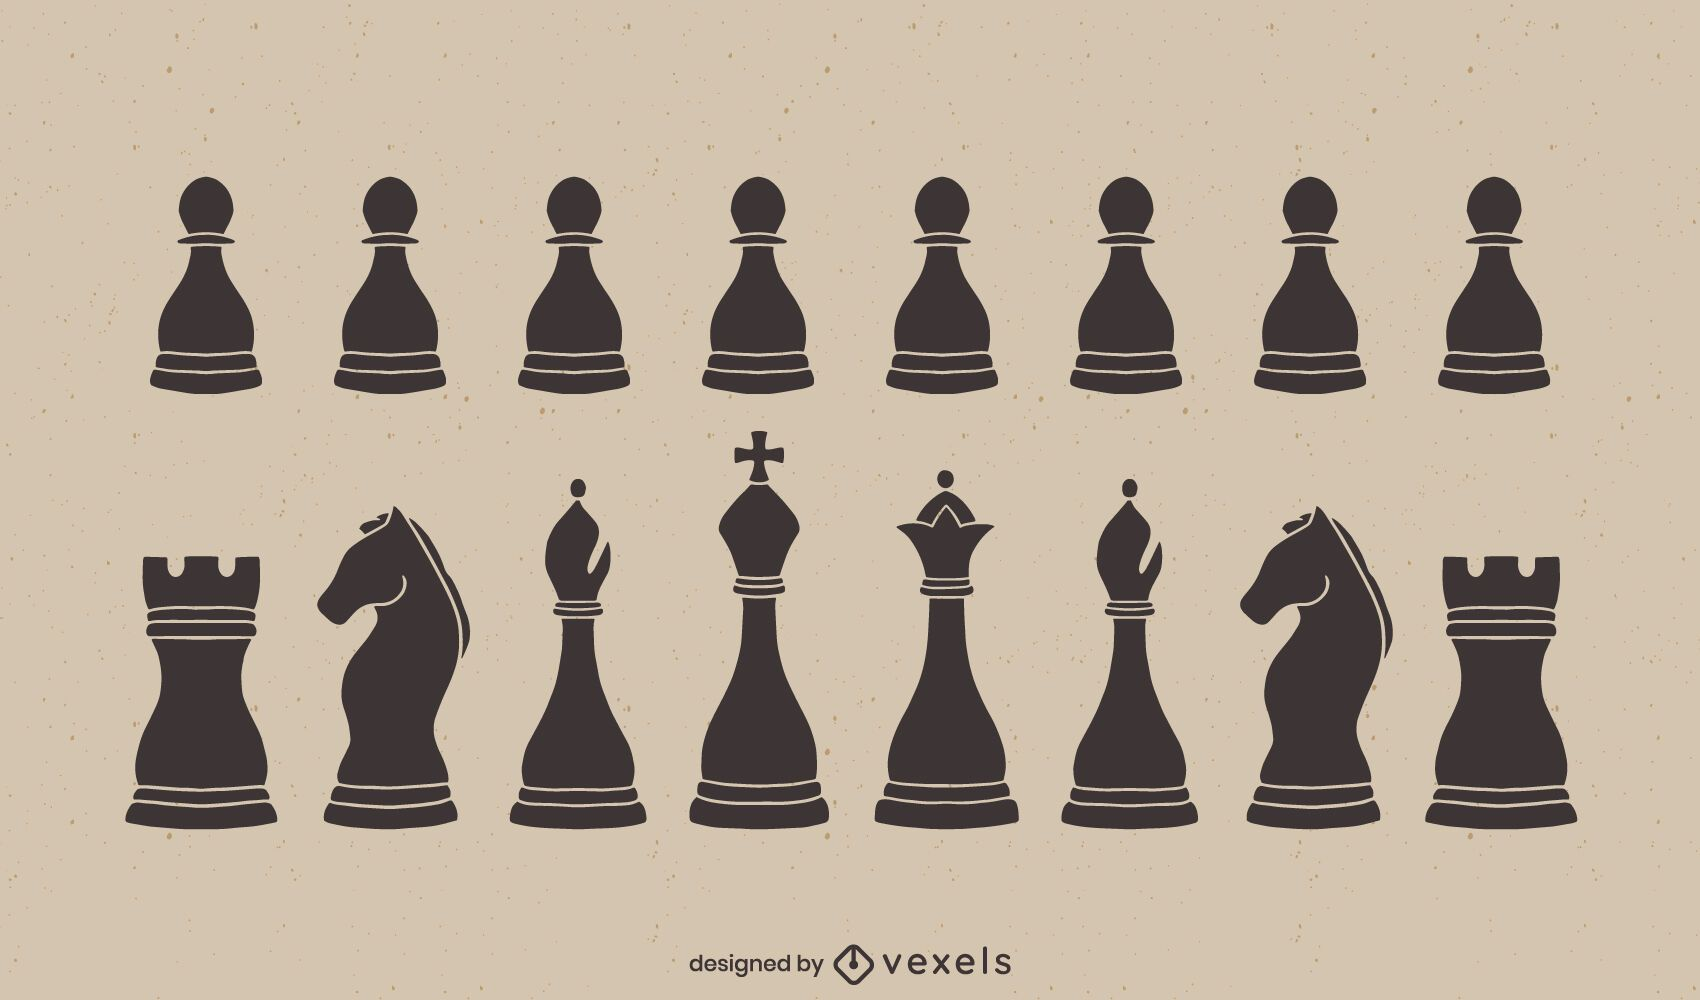 Classic chess pieces cut out set